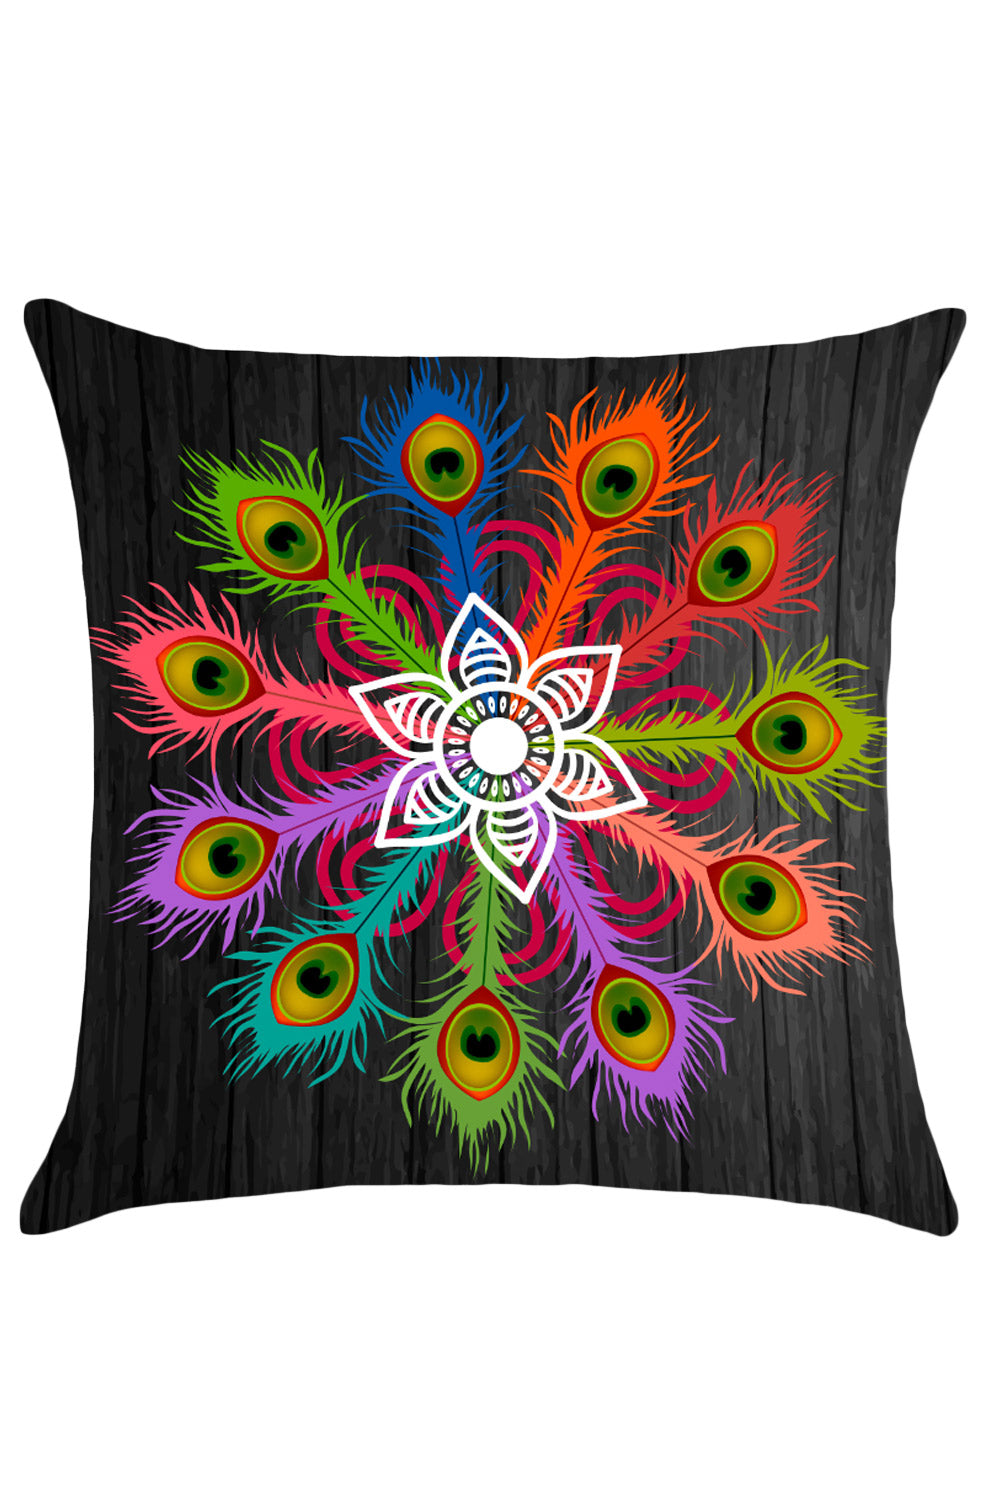 Peafowl Floral Print Cushion Pillow Cover - Online Women Fashion Accessories